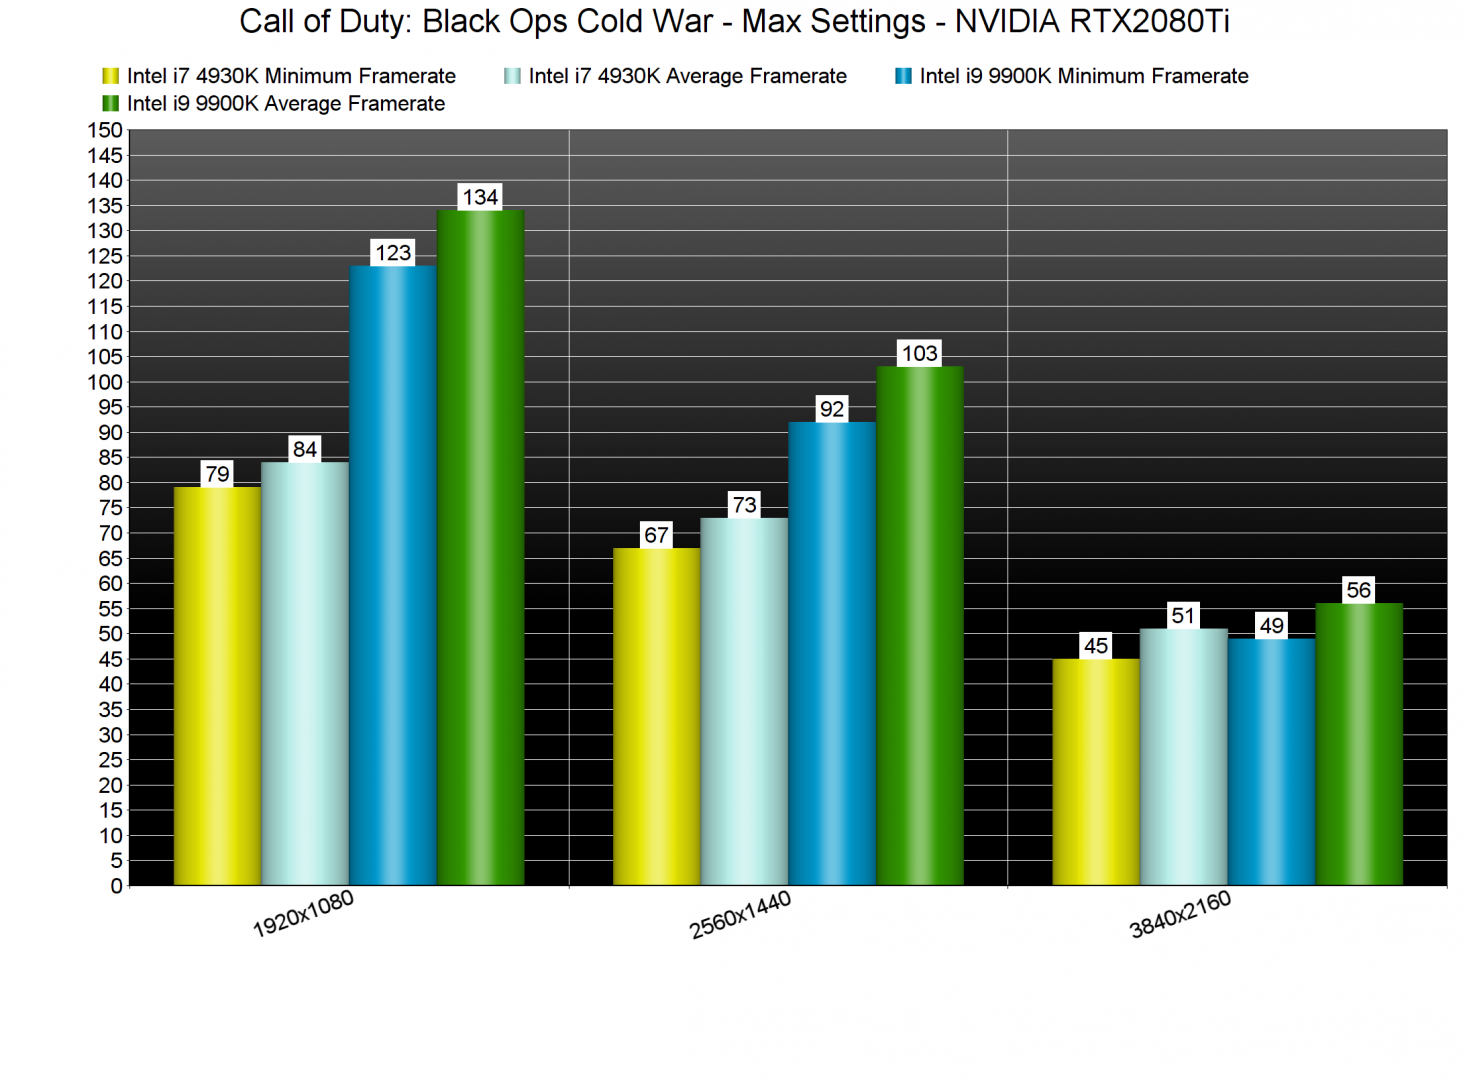 Call of Duty Black Ops Cold War CPU benchmarks-2